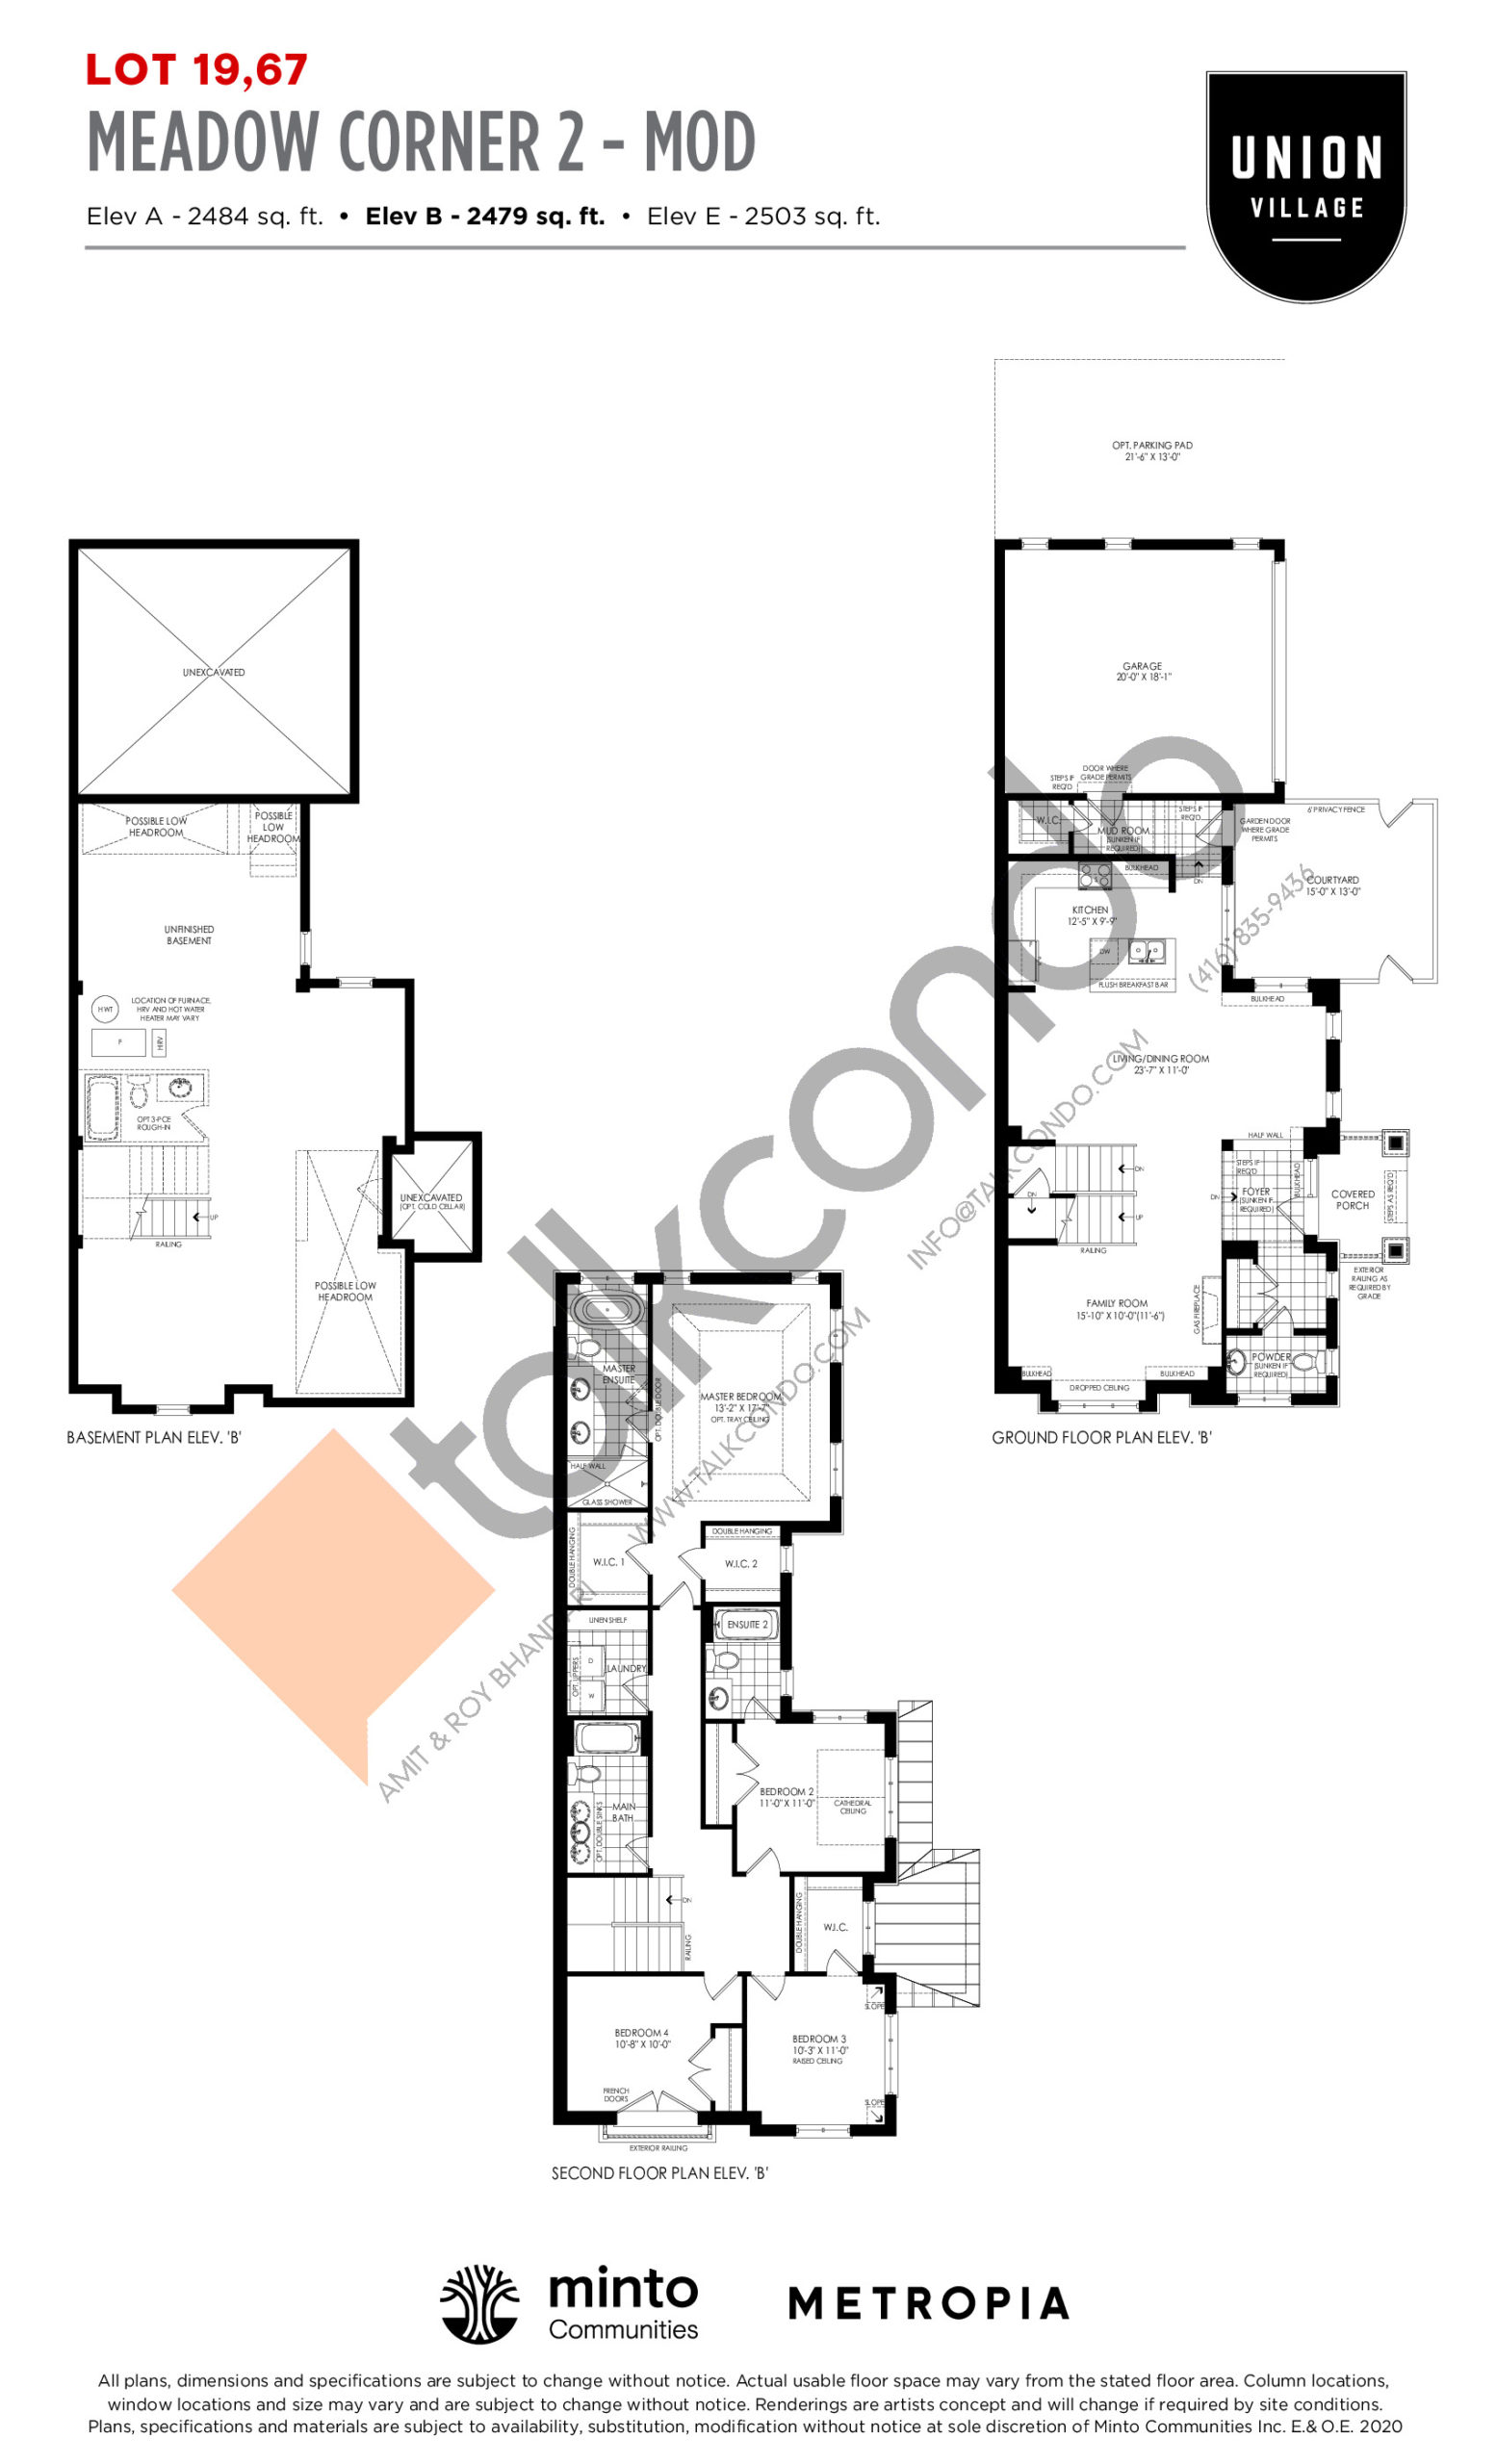 Meadow Corner 2 - MOD Elev B - The Rosewood Collection Floor Plan at Union Village - 2479 sq.ft